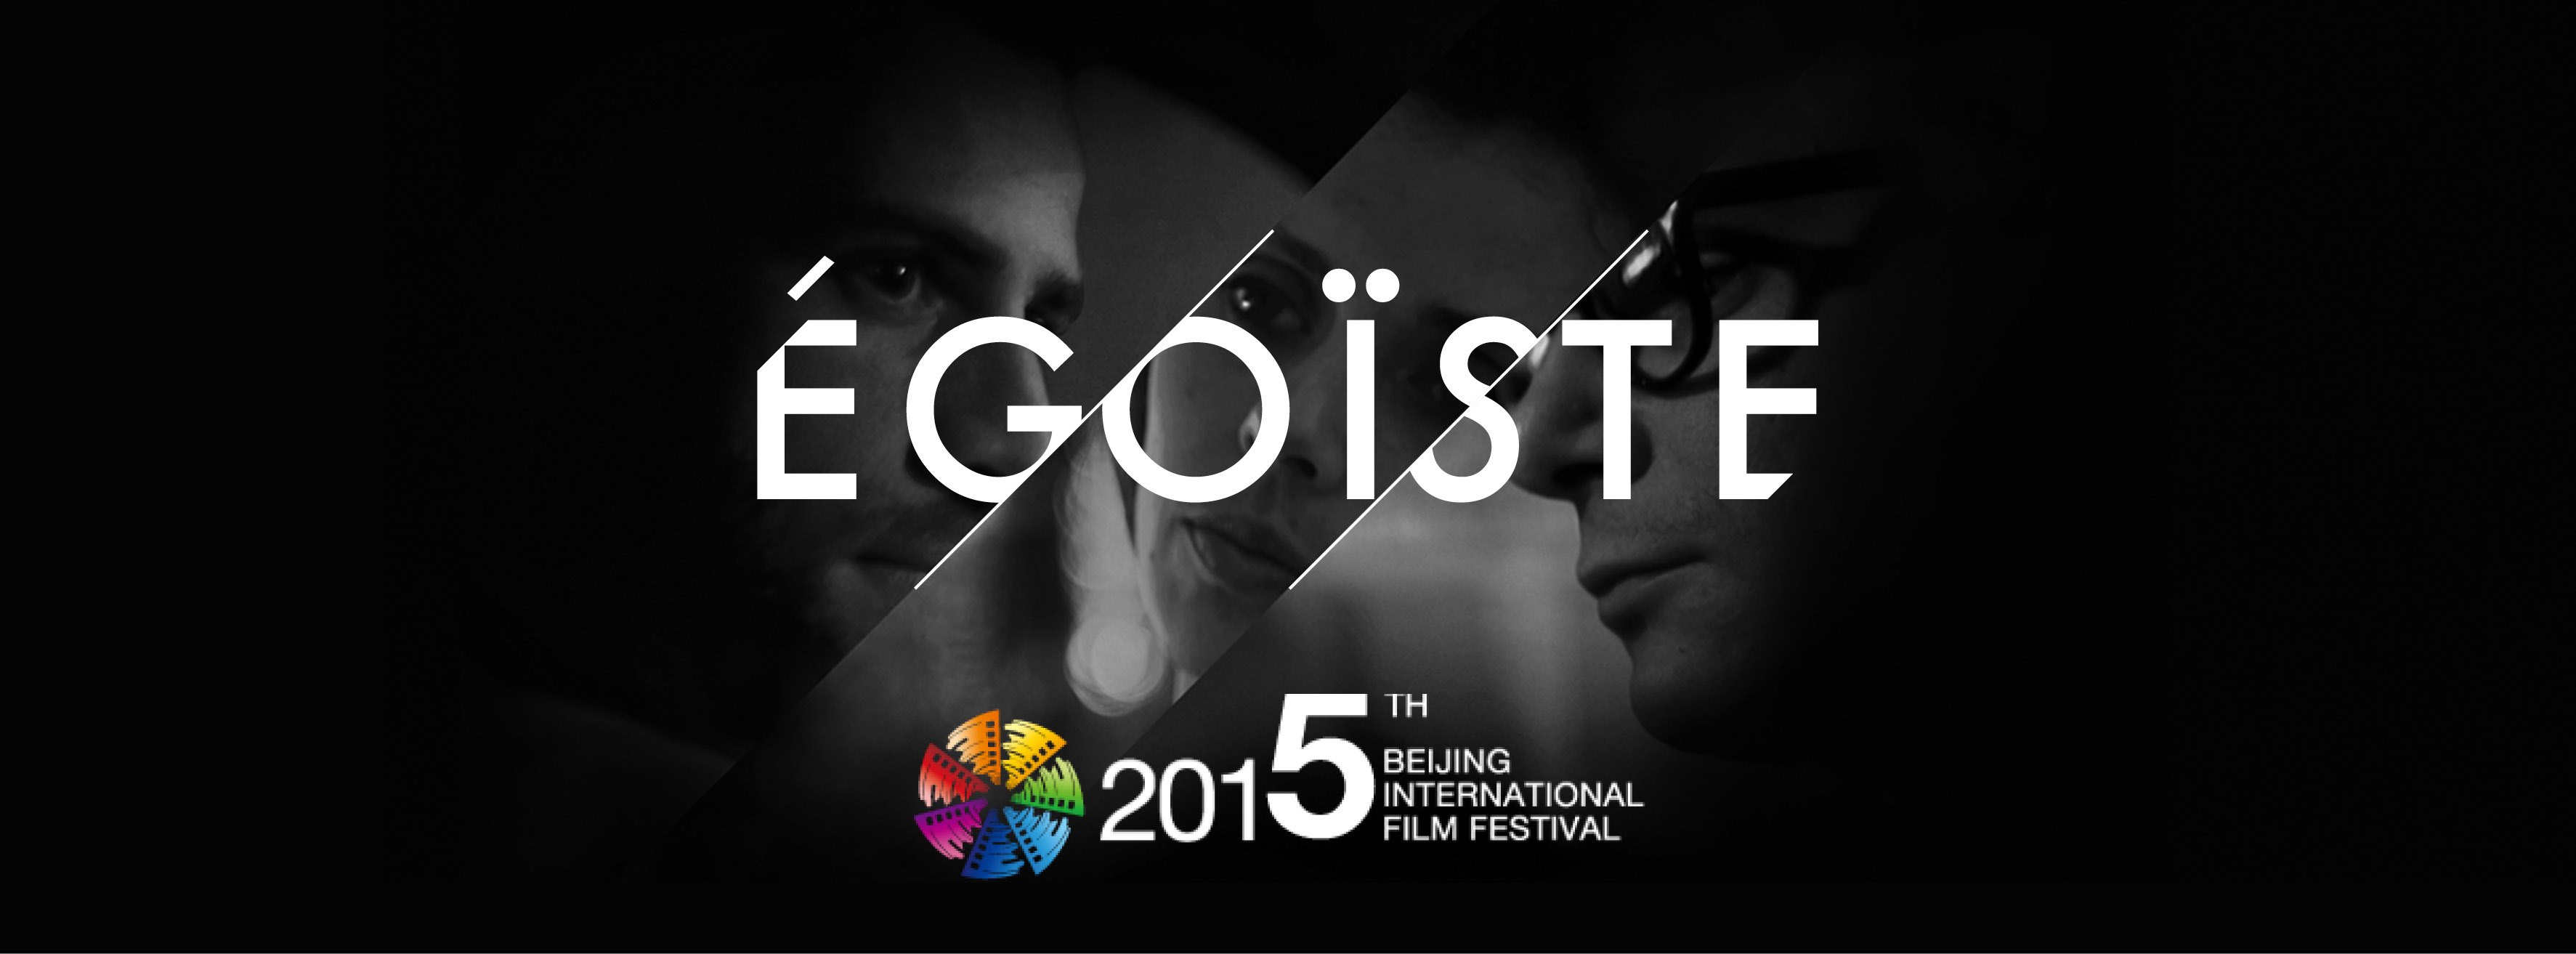 Égoïste selected for BJIFF